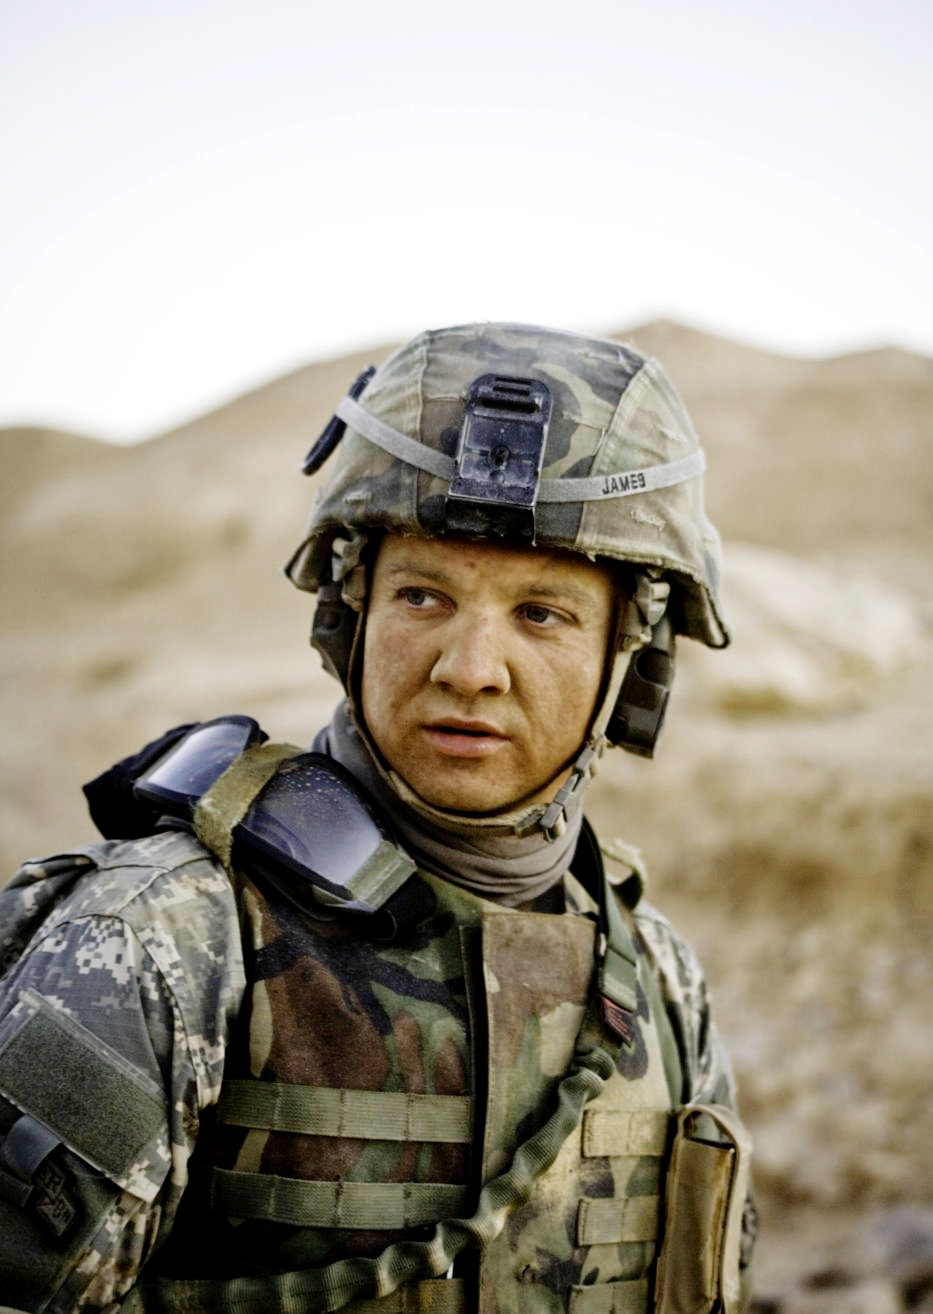 Lawsuit Against 'The Hurt Locker' Moved to California